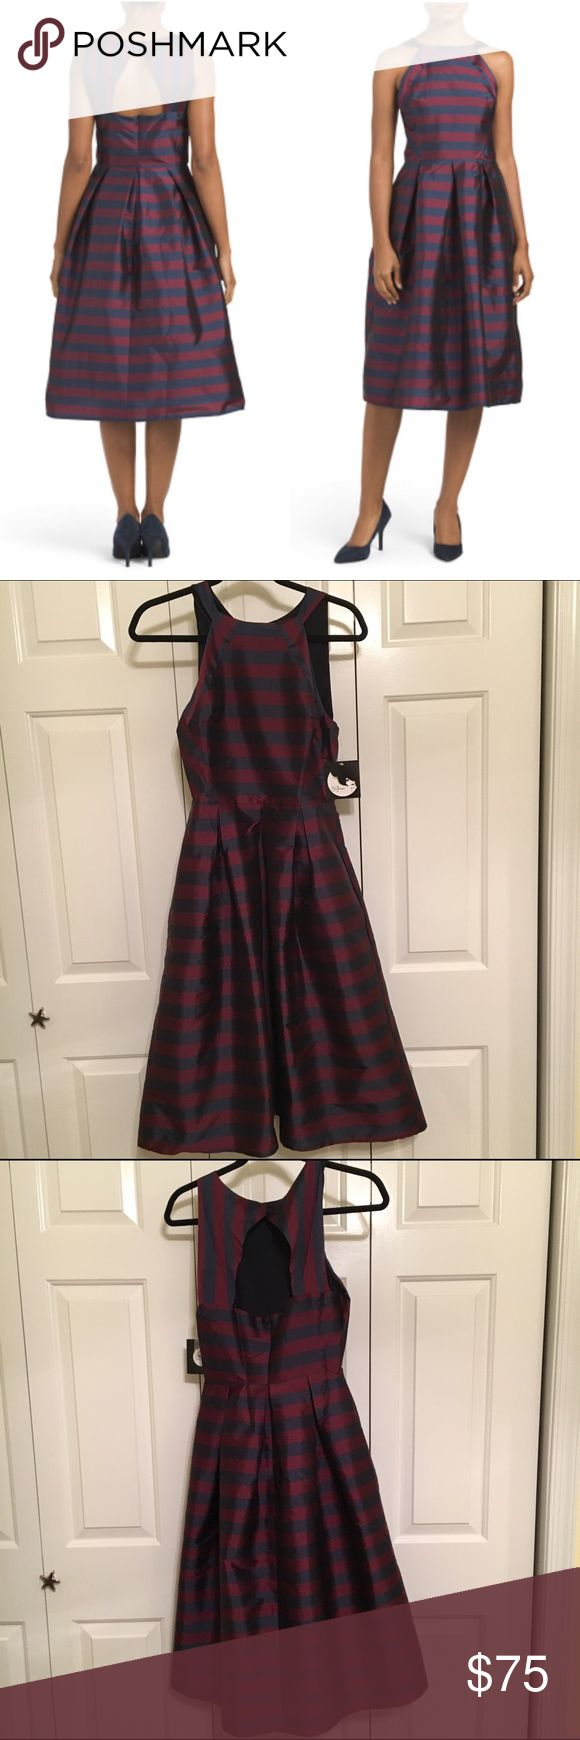 """Eva Franco striped red & navy party dress, size 4 Very classy evening dress with open back. Fits true to size. Come with comfortable slip/lining. Size 4 or small. Striped navy and red. Hits below knee/""""midi"""". New with tags. $160 dress on sale Eva Franco Dresses Midi"""